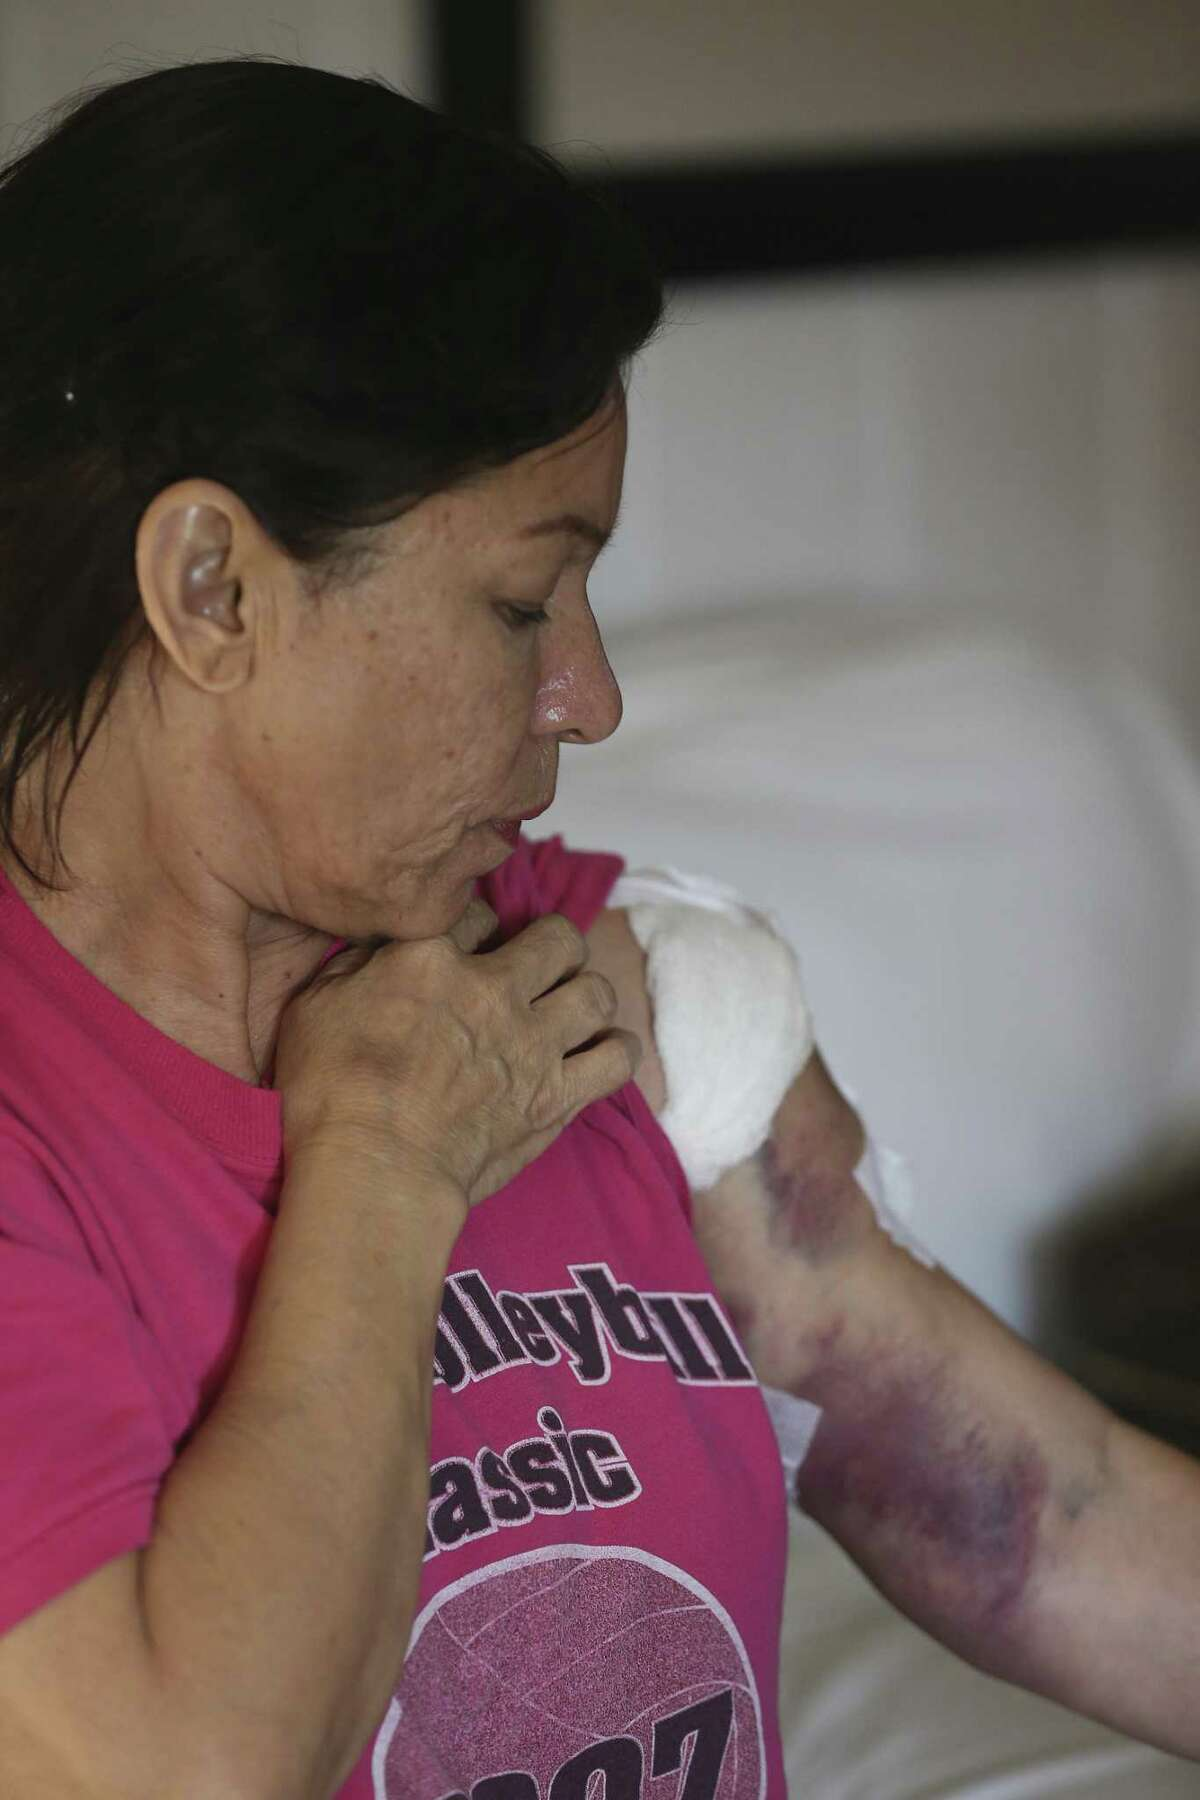 Rosanne Solis, 57, shows her wounded left arm. She and her husband, Joaquin Rodriguez, 50, were attending services at the church when Devin Patrick Kelly, 26, walked in and started shooting.